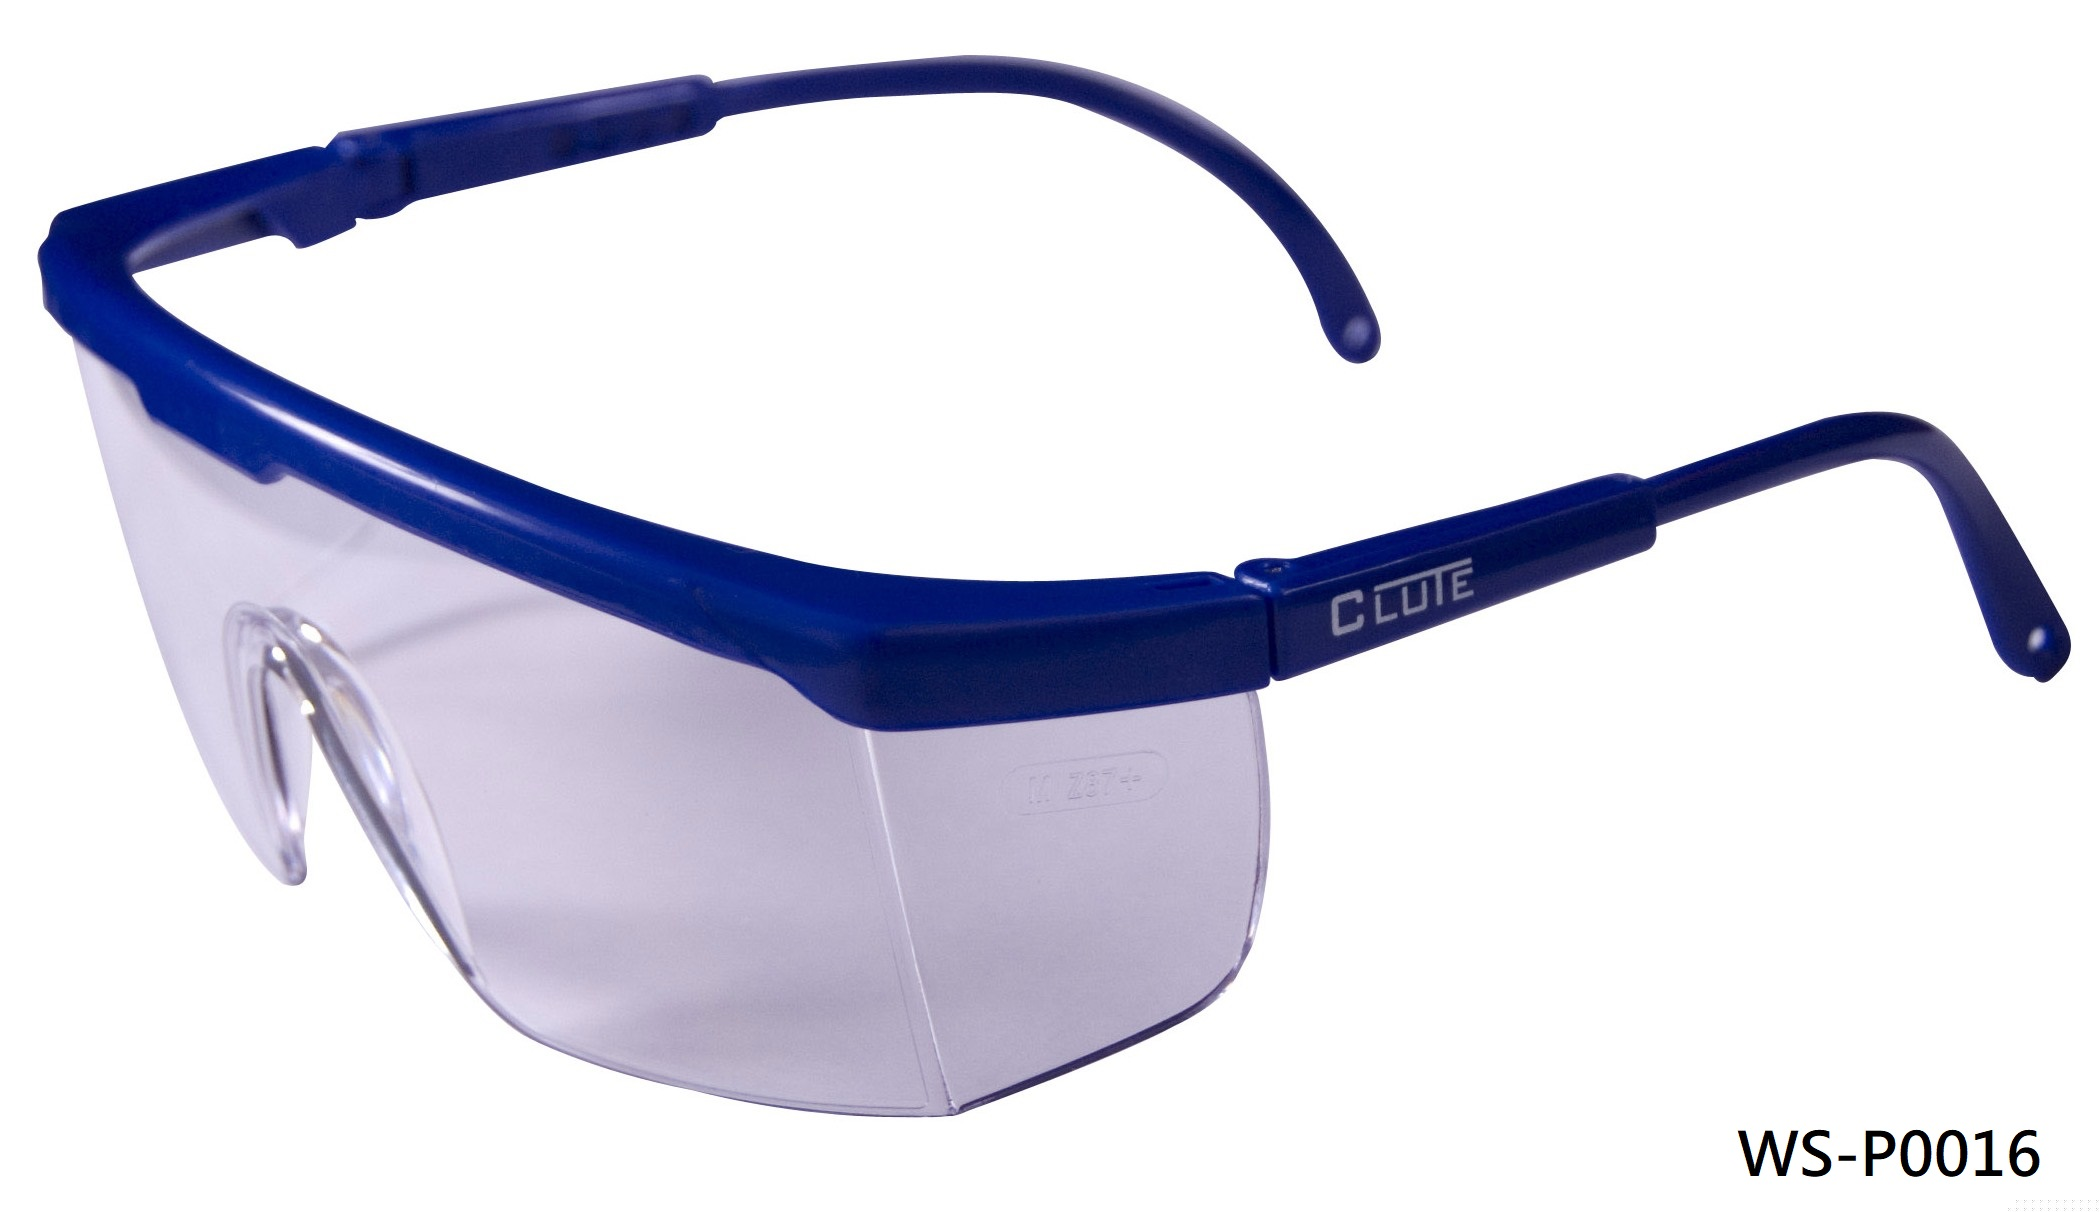 selling safety glasses WS-P0016